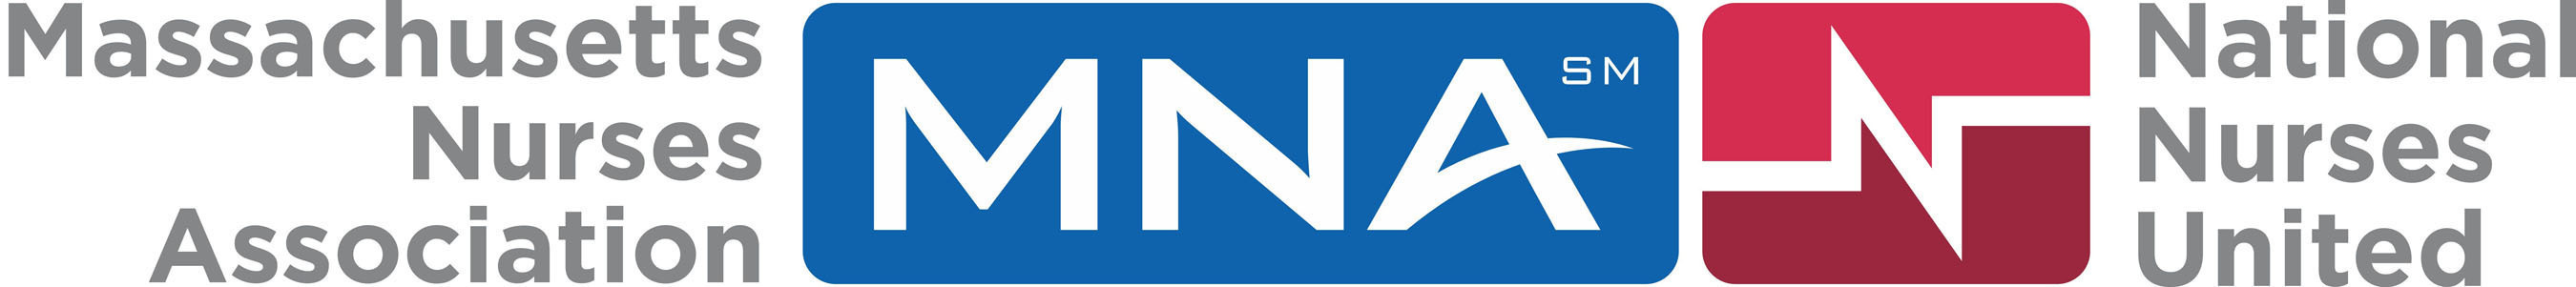 Massachusetts Nurses Association logo